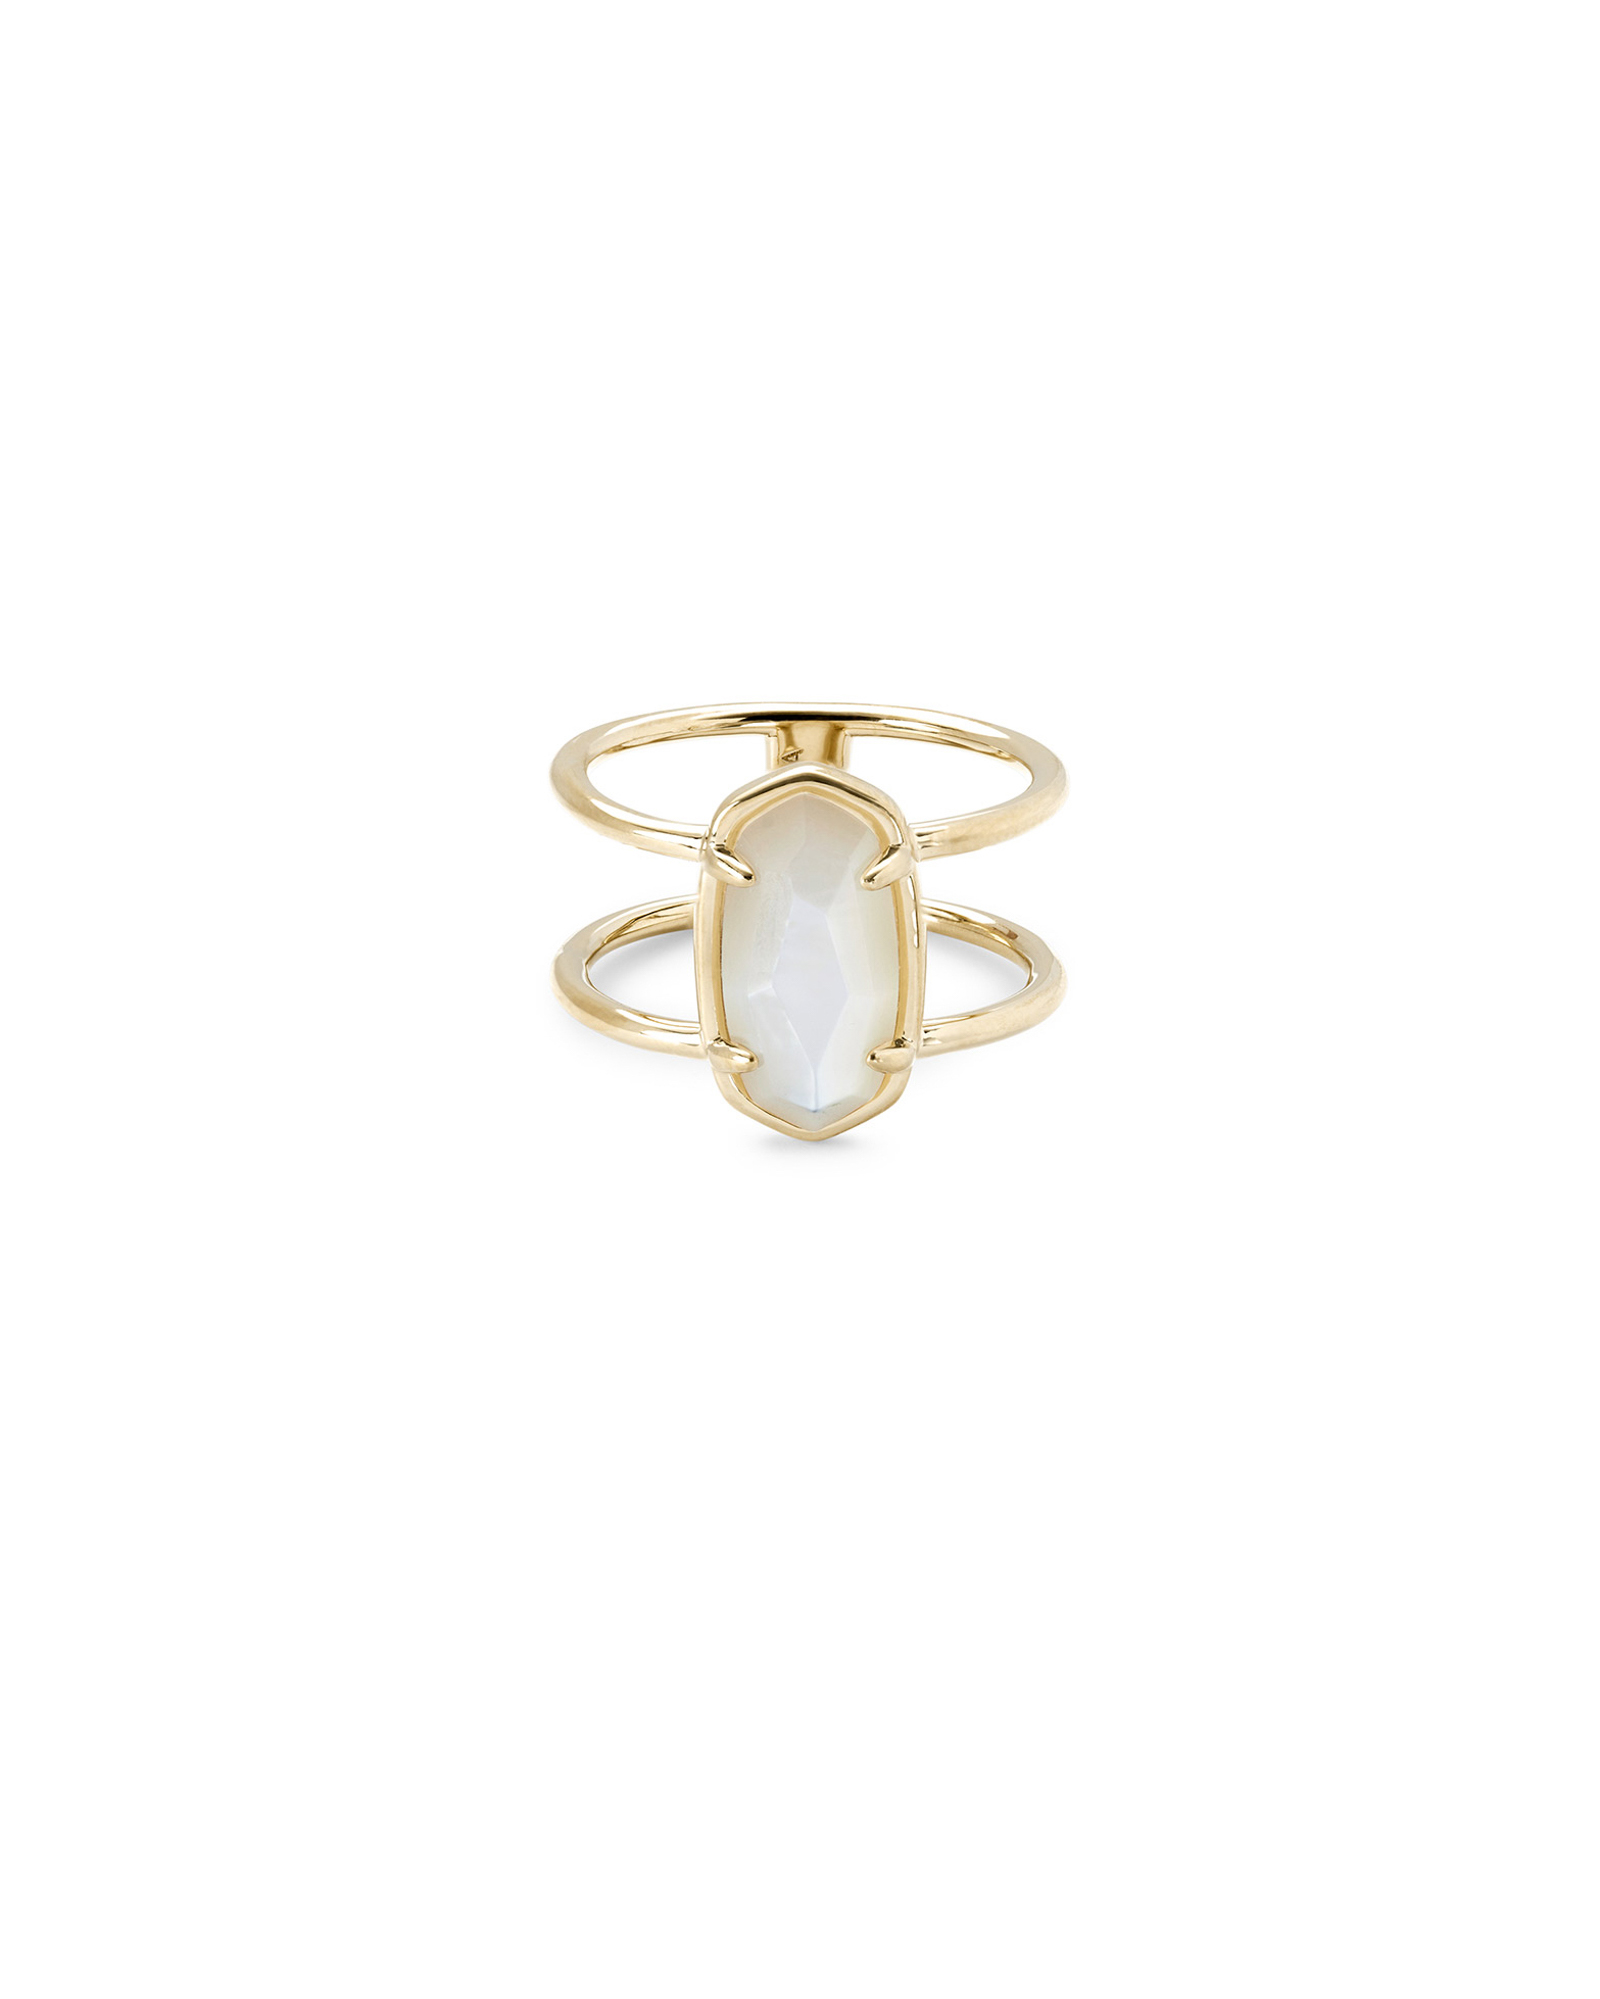 Elyse Gold Vermeil Double Band Ring